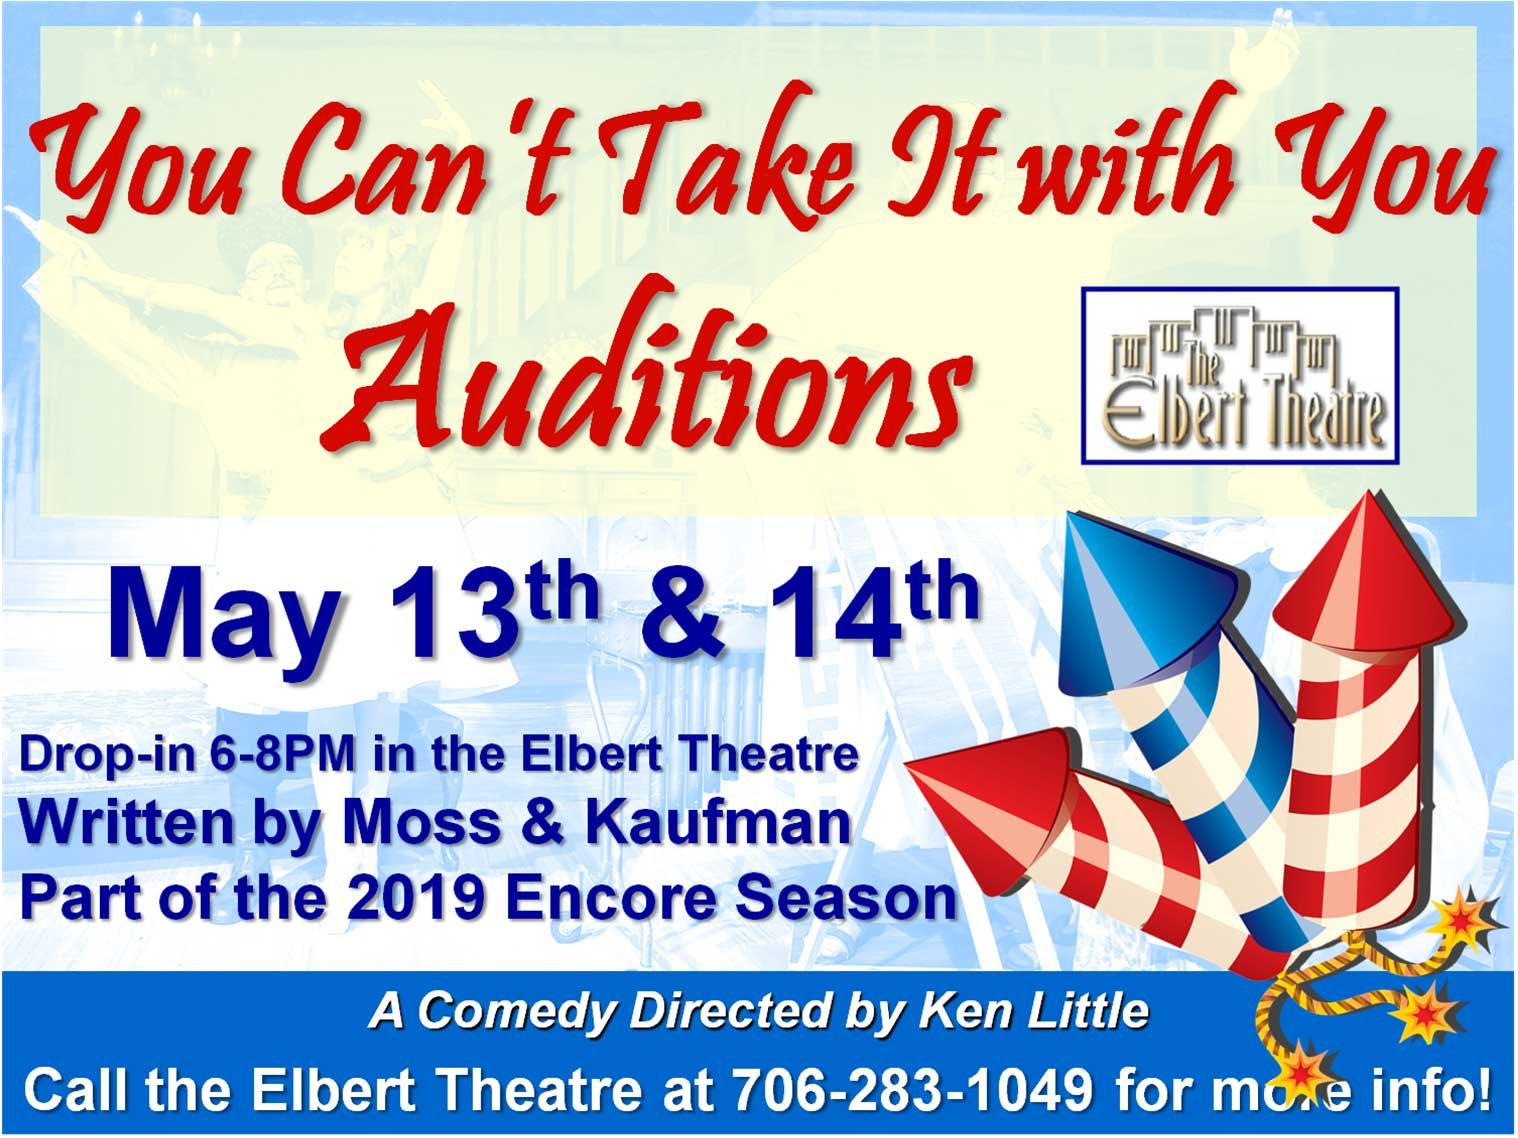 You Can't Take It With You Auditions Advertisement